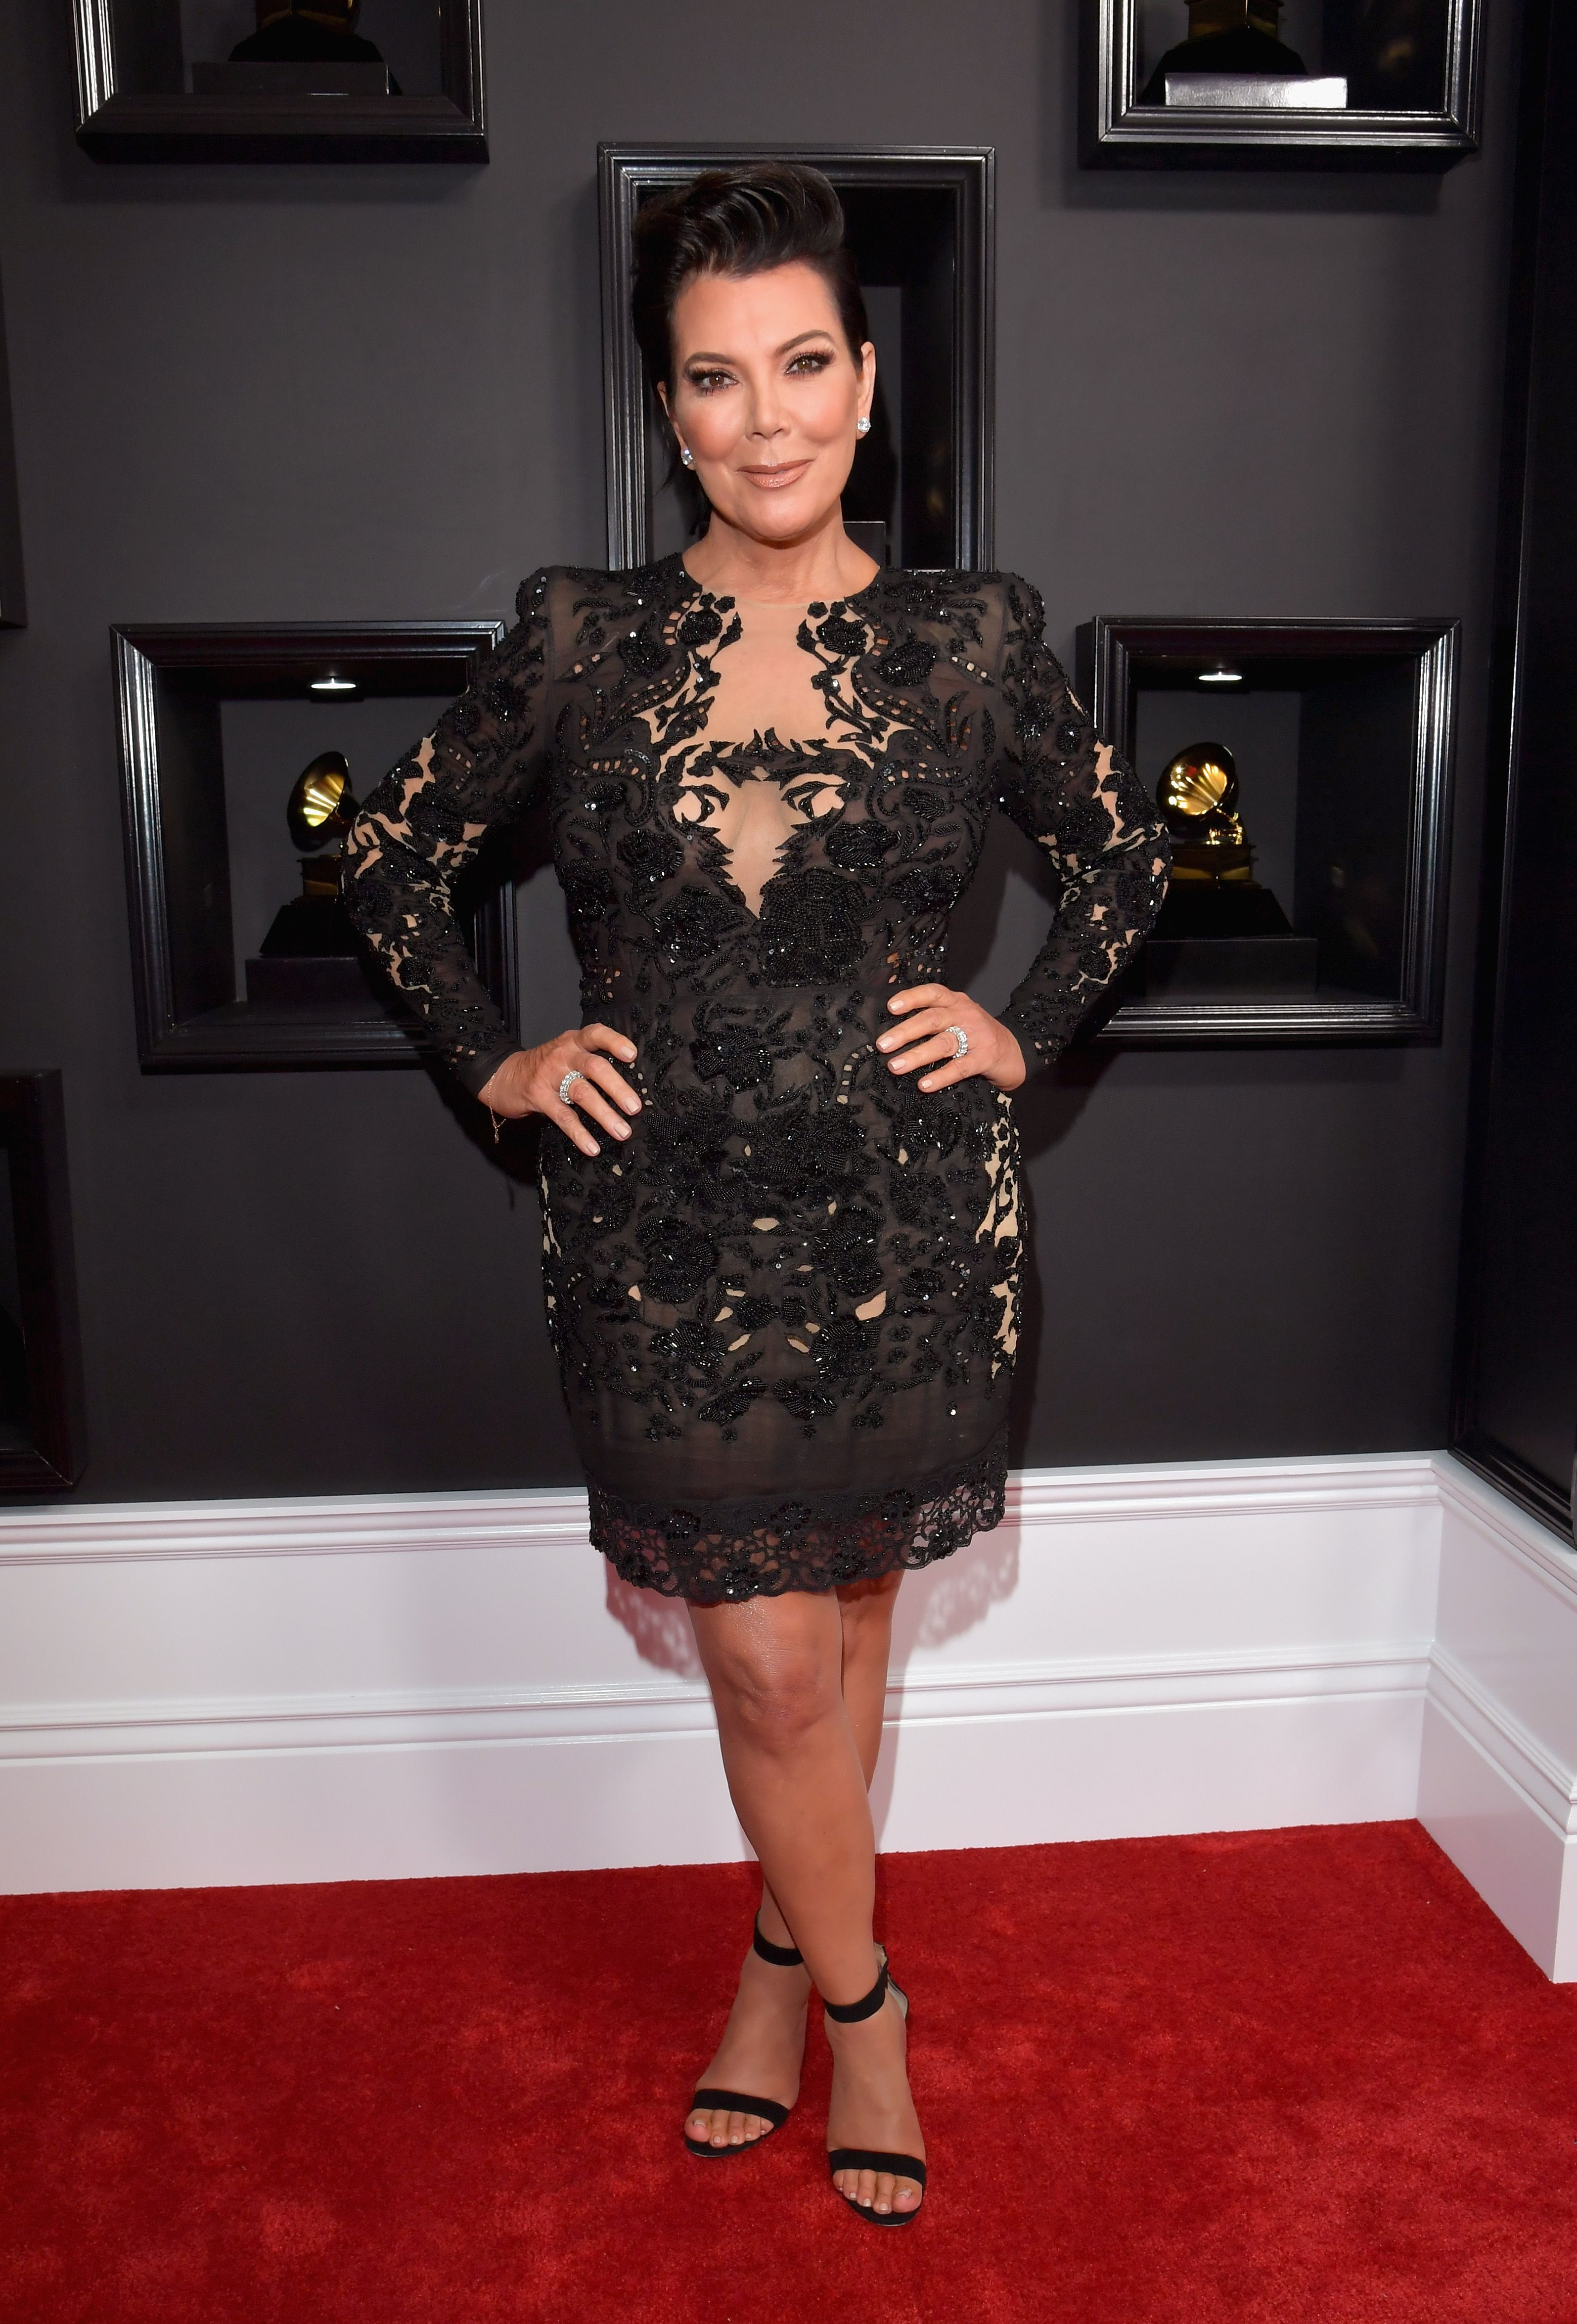 b85426d2dec All the Looks From the Grammys Red Carpet